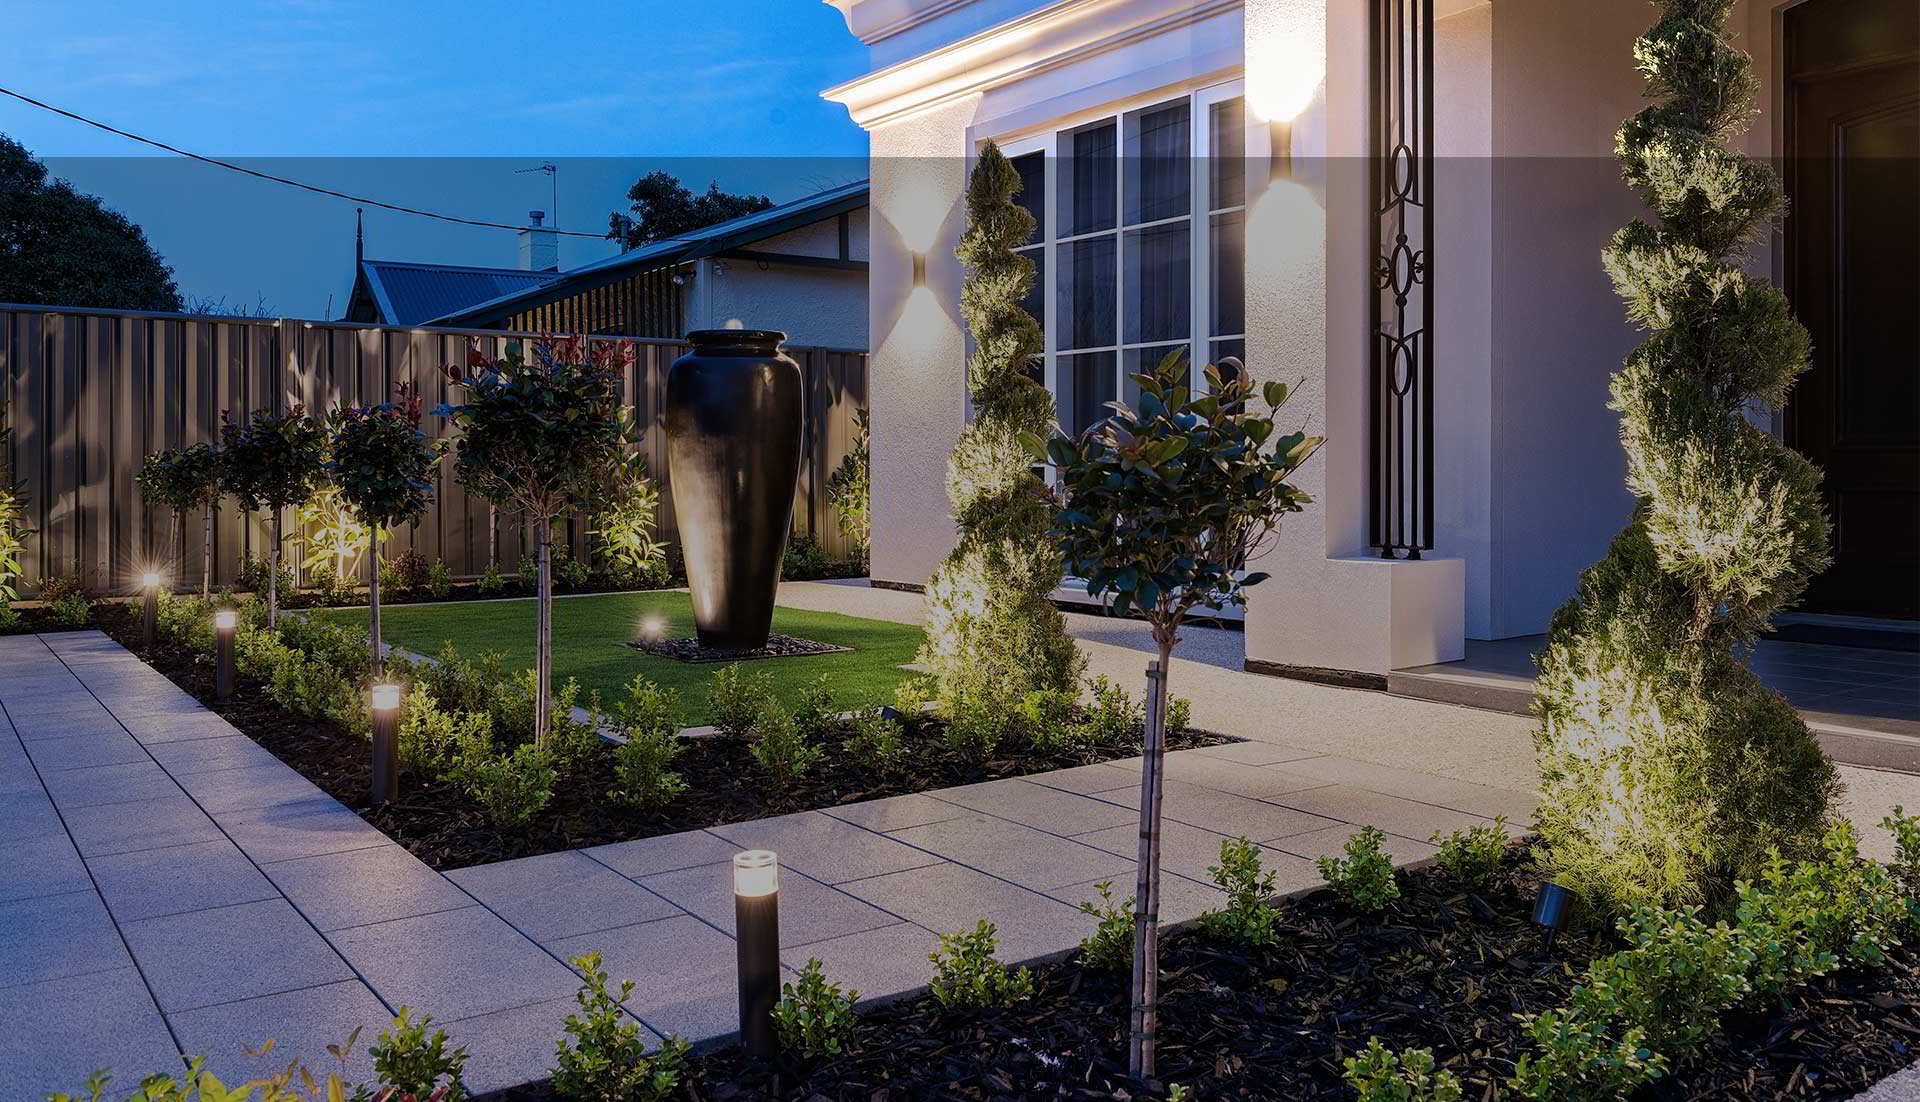 Image of: Landscaper Adelaide Landscape Gardeners Exposed Aggregate Concrete